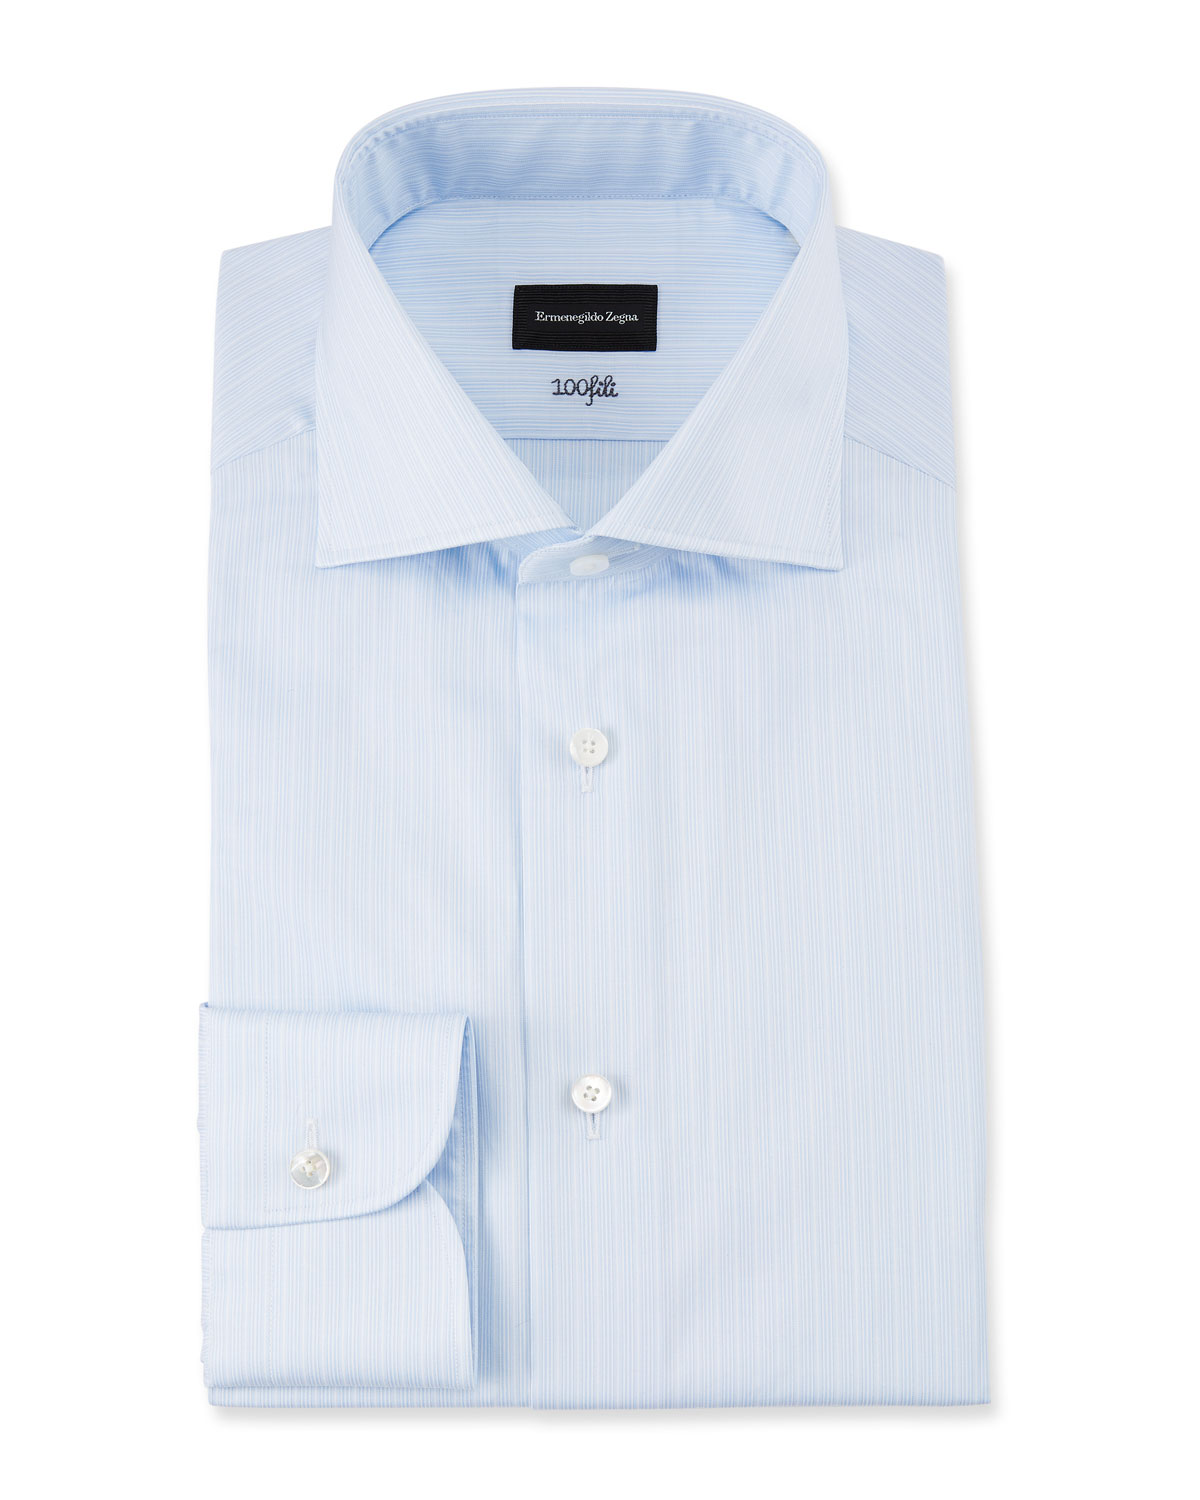 Men's 100fili Micro-Stripe Dress Shirt